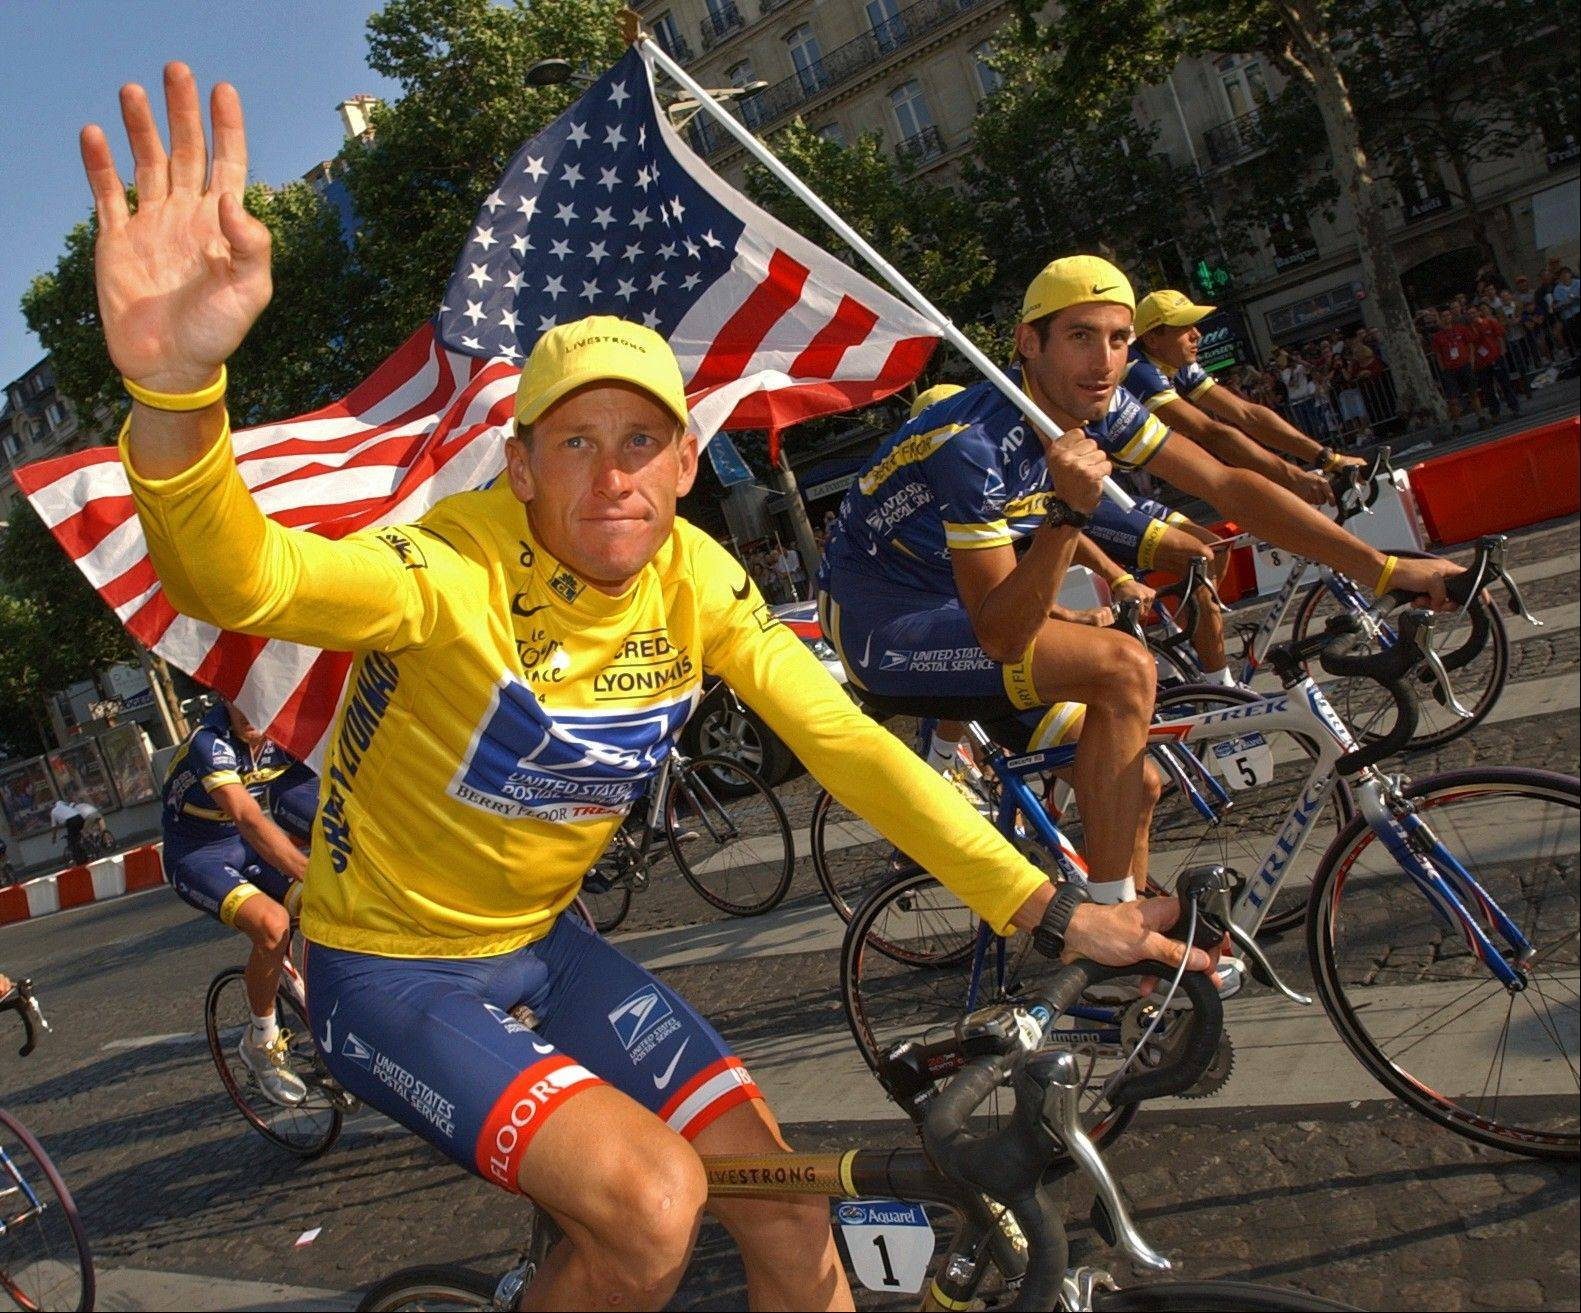 U.S. Postal Service cycling team leader and 2004 Tour de France winner Lance Armstrong, wearing the overall leader's yellow jersey, and teammate George Hincapie, right, ride the victory lap on Champs Elysees boulevard in Paris, France. Lawyers for Armstrong say the Justice Department has joined a lawsuit against the cyclist.